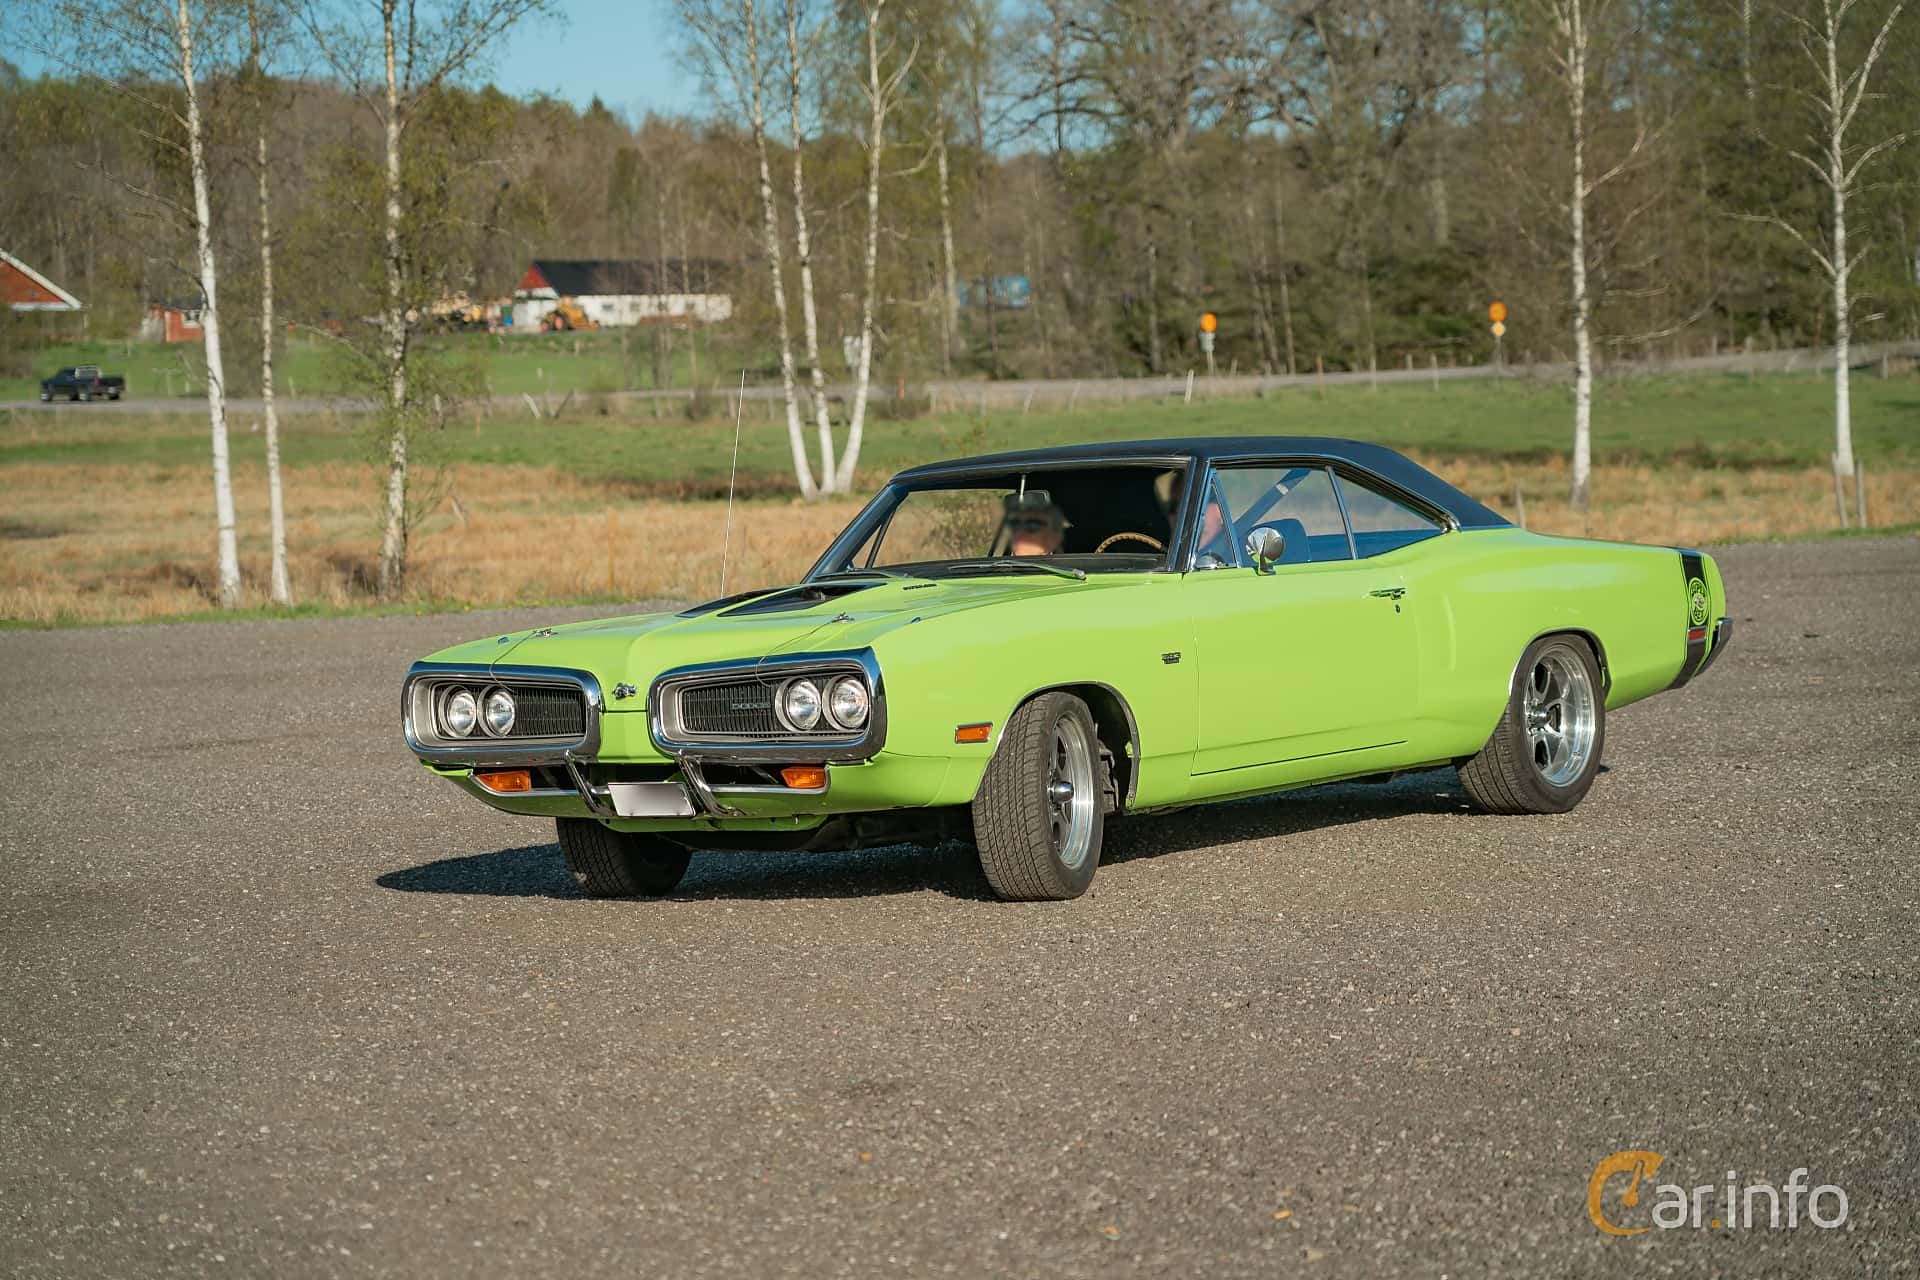 Front/Side  of Dodge Coronet Super Bee Hardtop 6.3 V8 TorqueFlite, 340ps, 1970 at Lissma Classic Car 2019 vecka 20